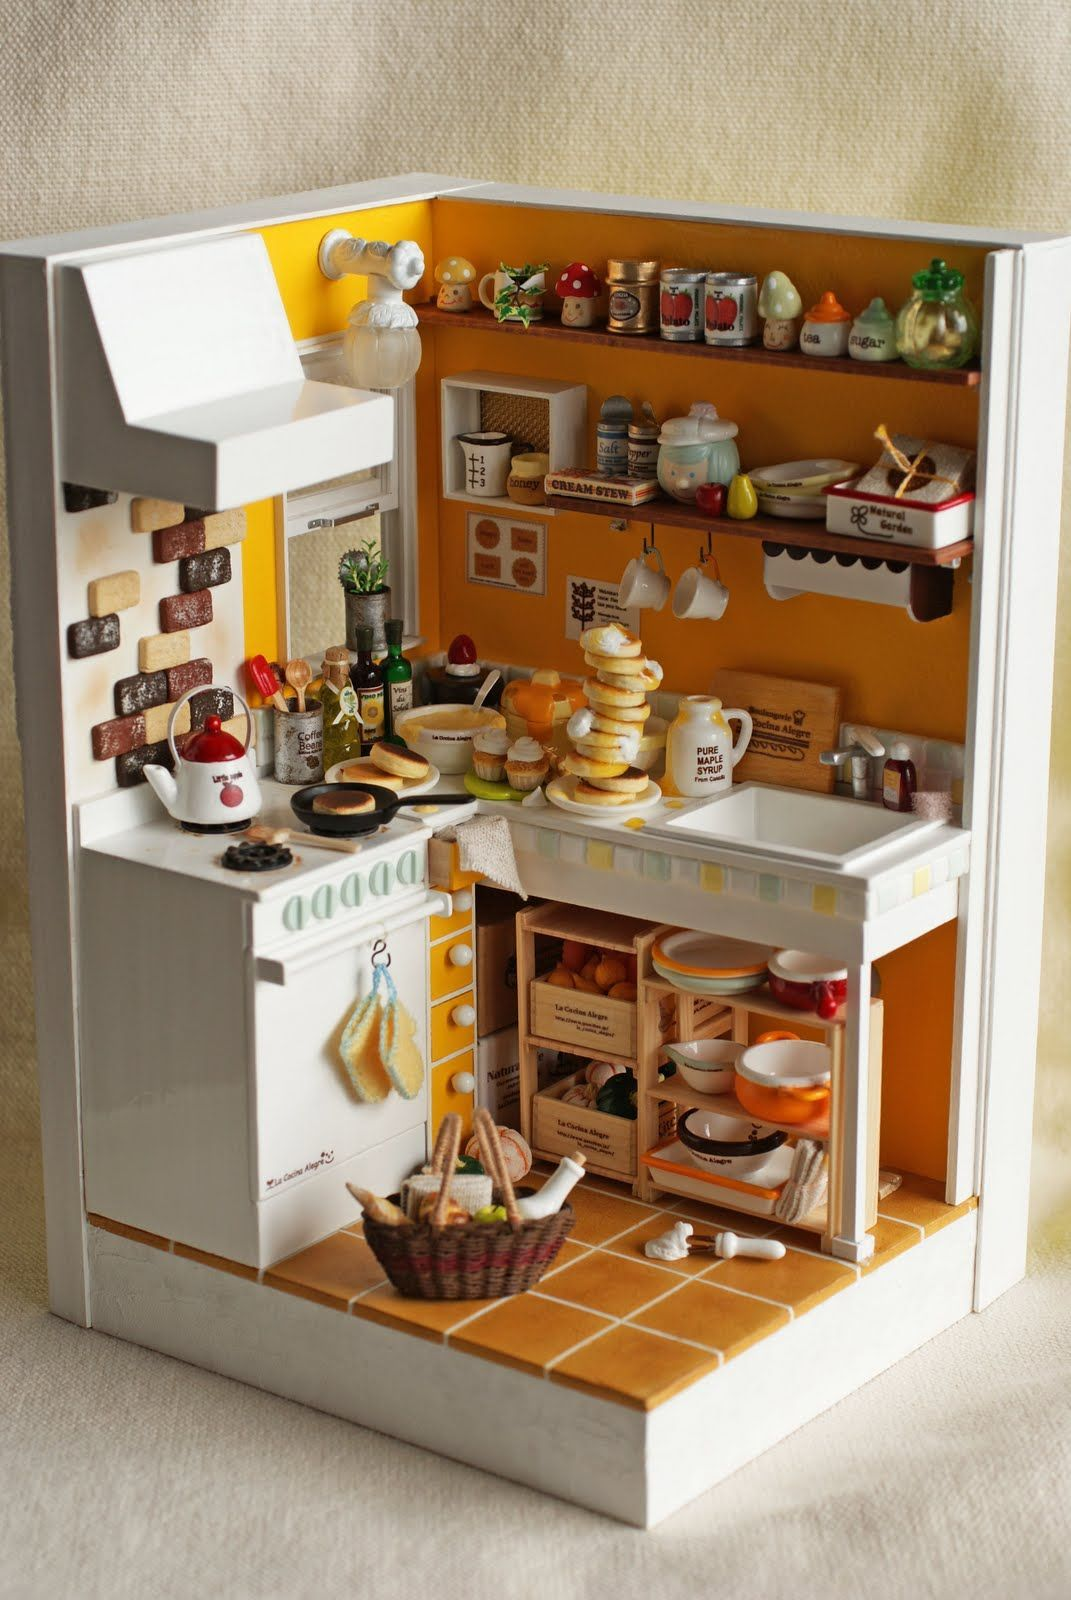 Lista de quartos em miniatura Pinterest & Pinterest Miniature Rooms ideas #miniaturekitchen